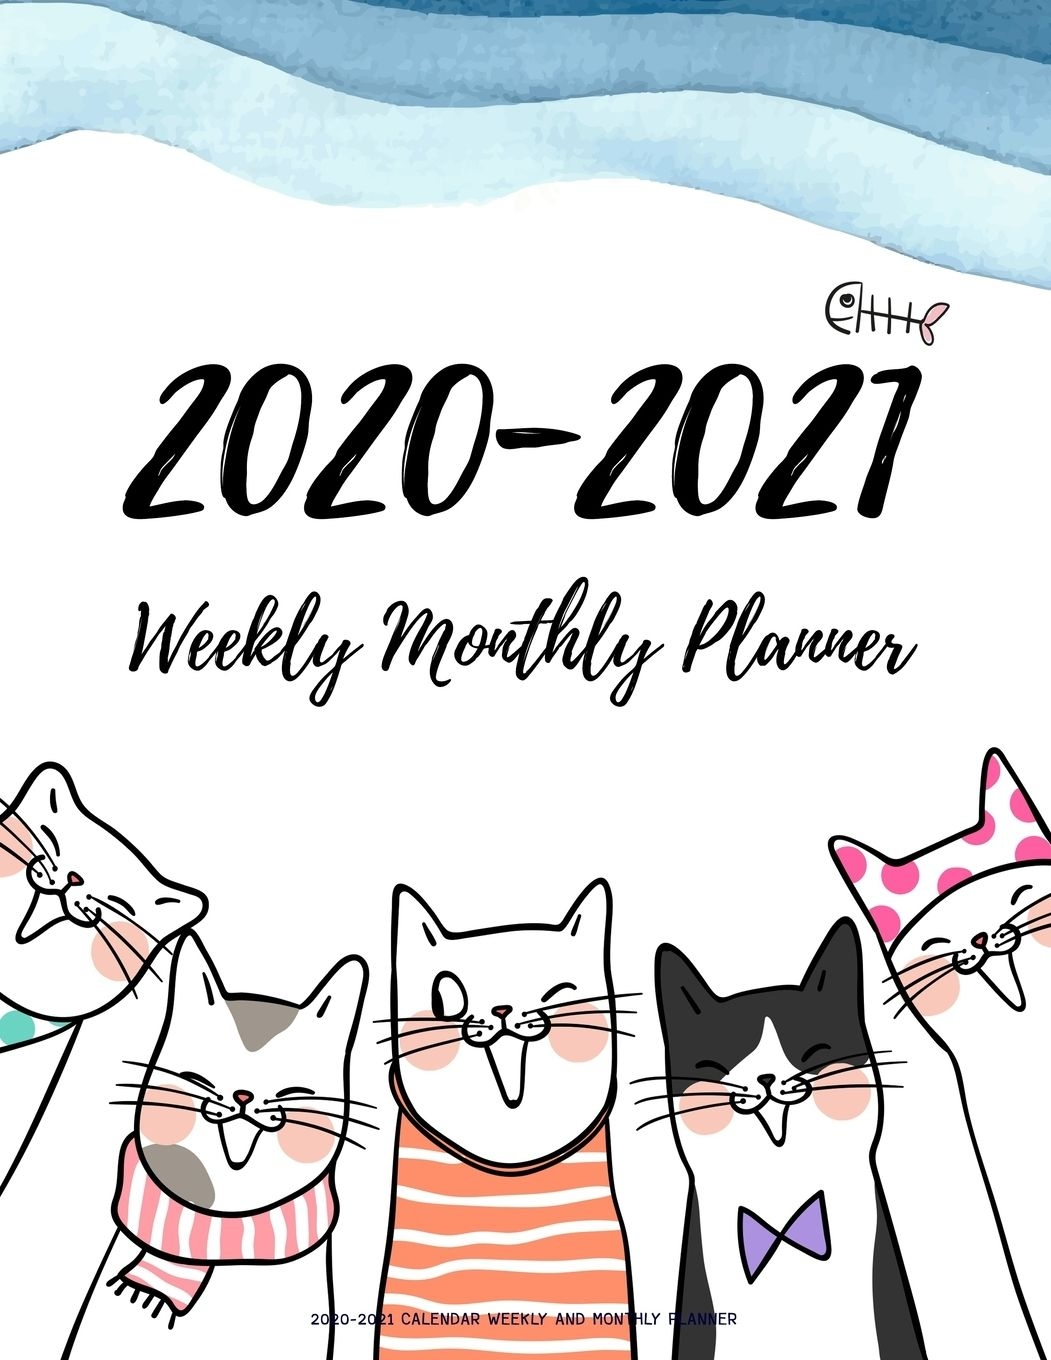 2020 2021 Daily Weekly Monthly Calendar Planners W/ Holidays: 2020 2021 Calendar Weekly And Monthly Planner: Two Year 24 Month Jan 2020 Dec 2021